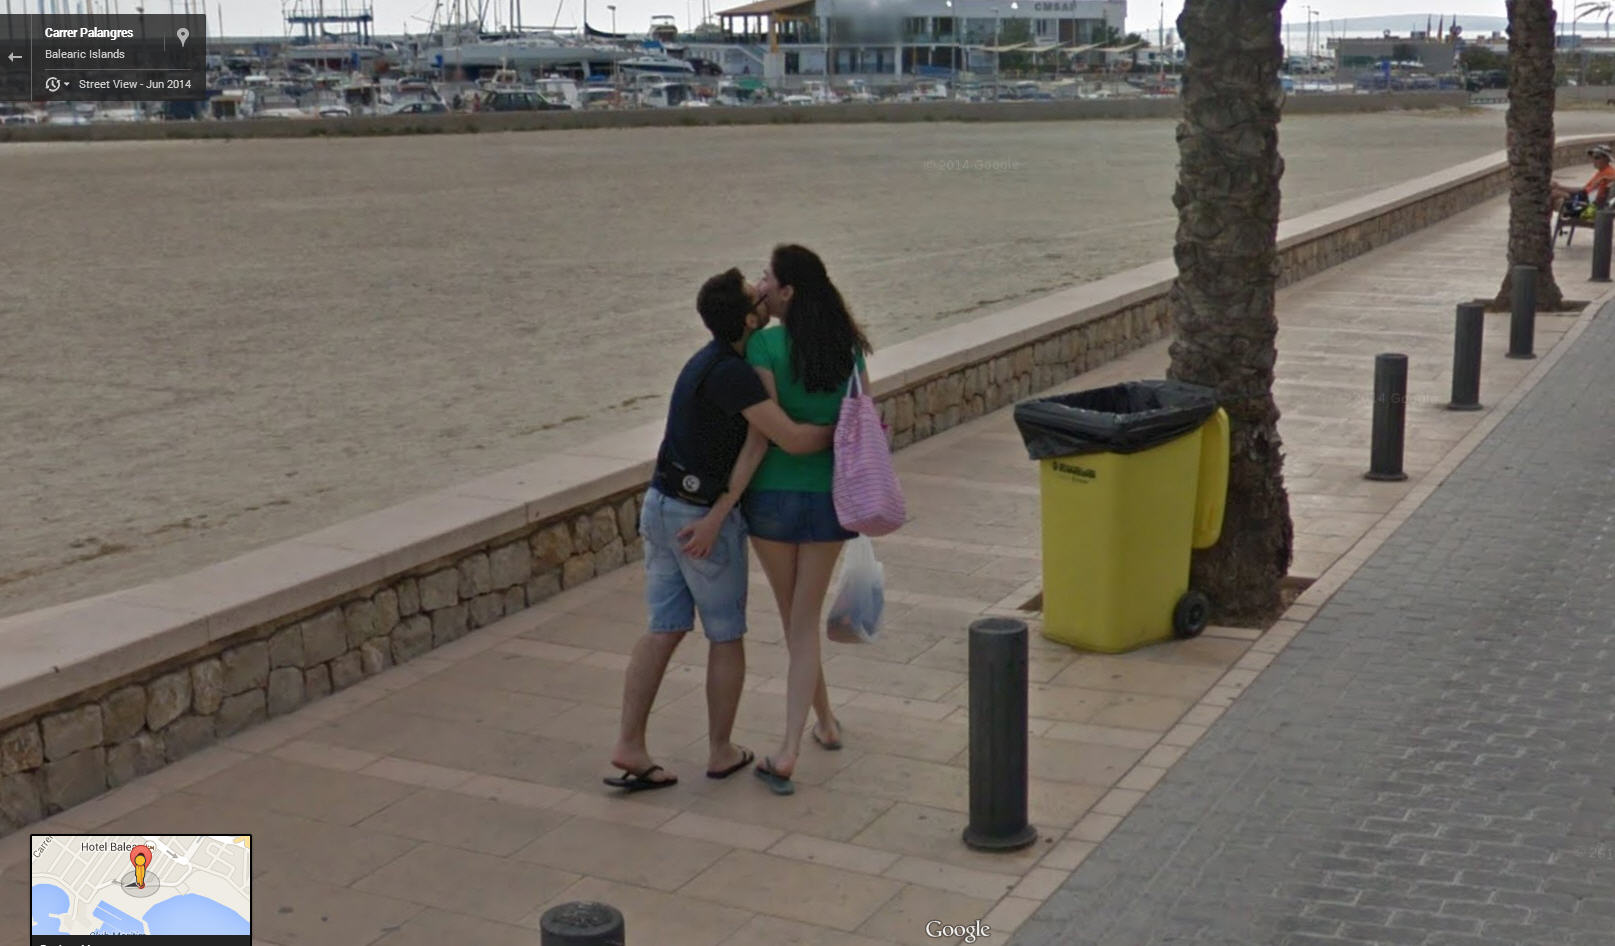 spanish lovebirds google street view world funny street view images from google maps. Black Bedroom Furniture Sets. Home Design Ideas